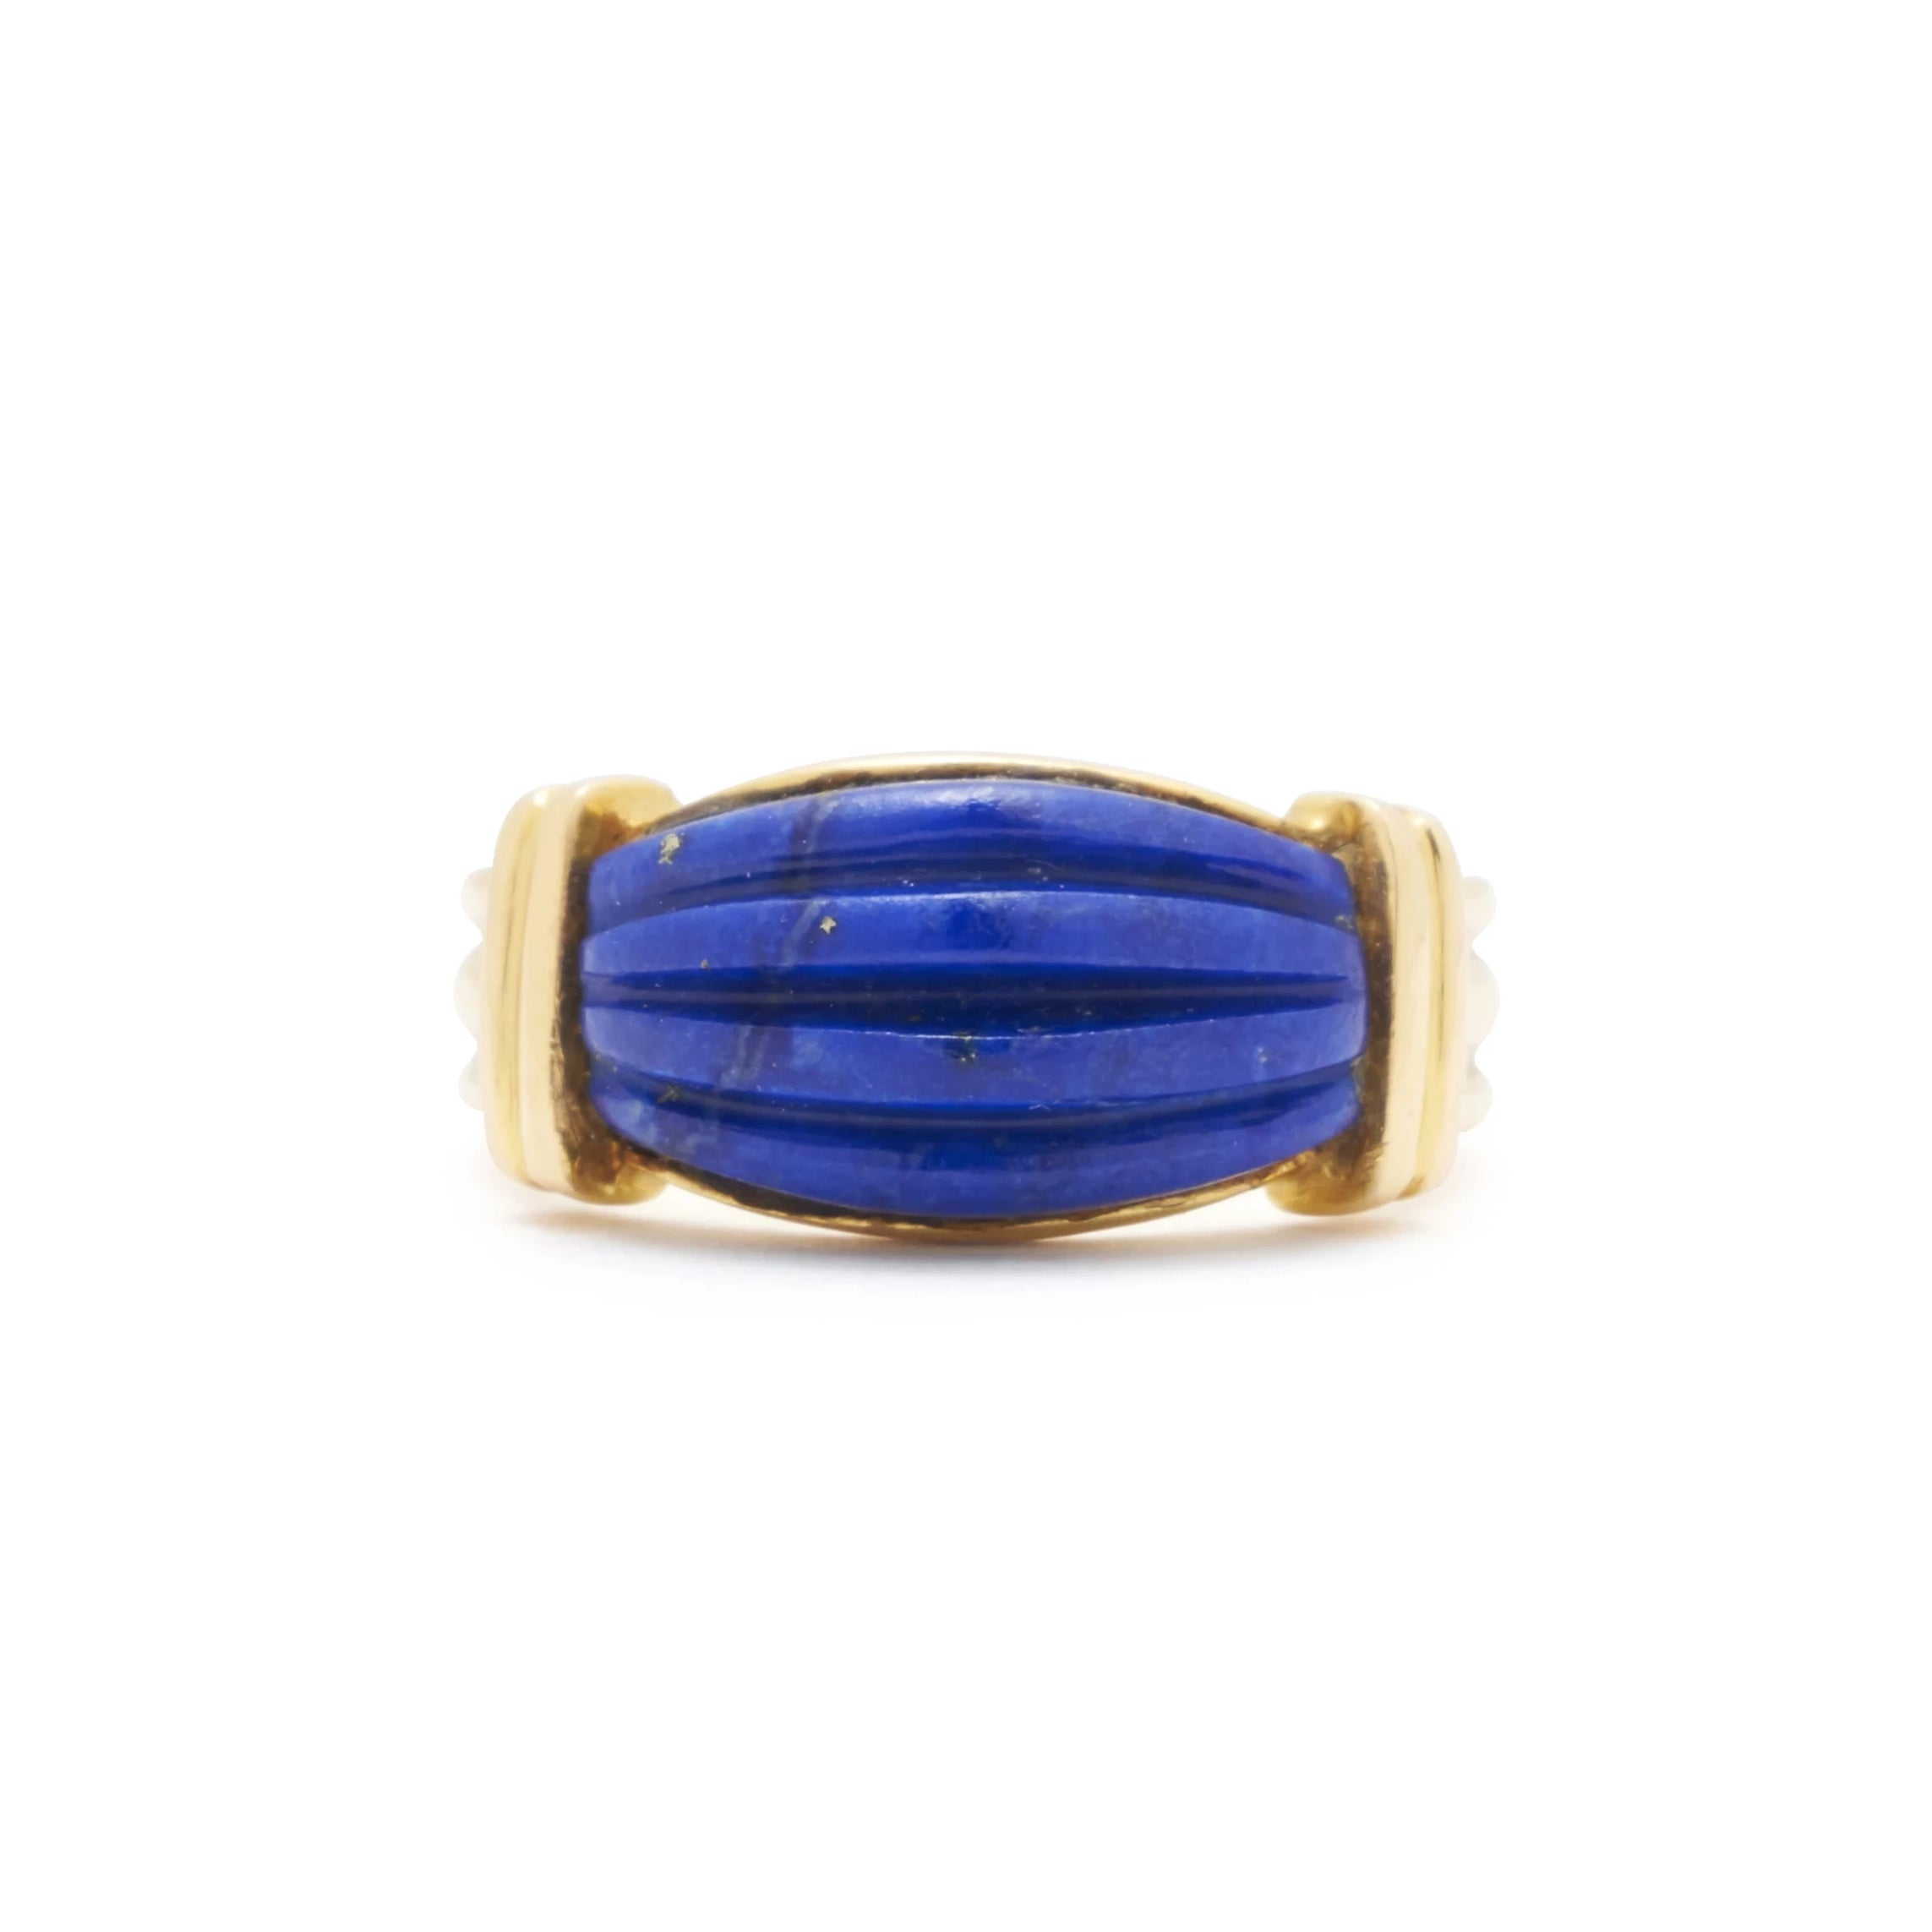 Carved Lapis Lazuli And 18k Gold Ring